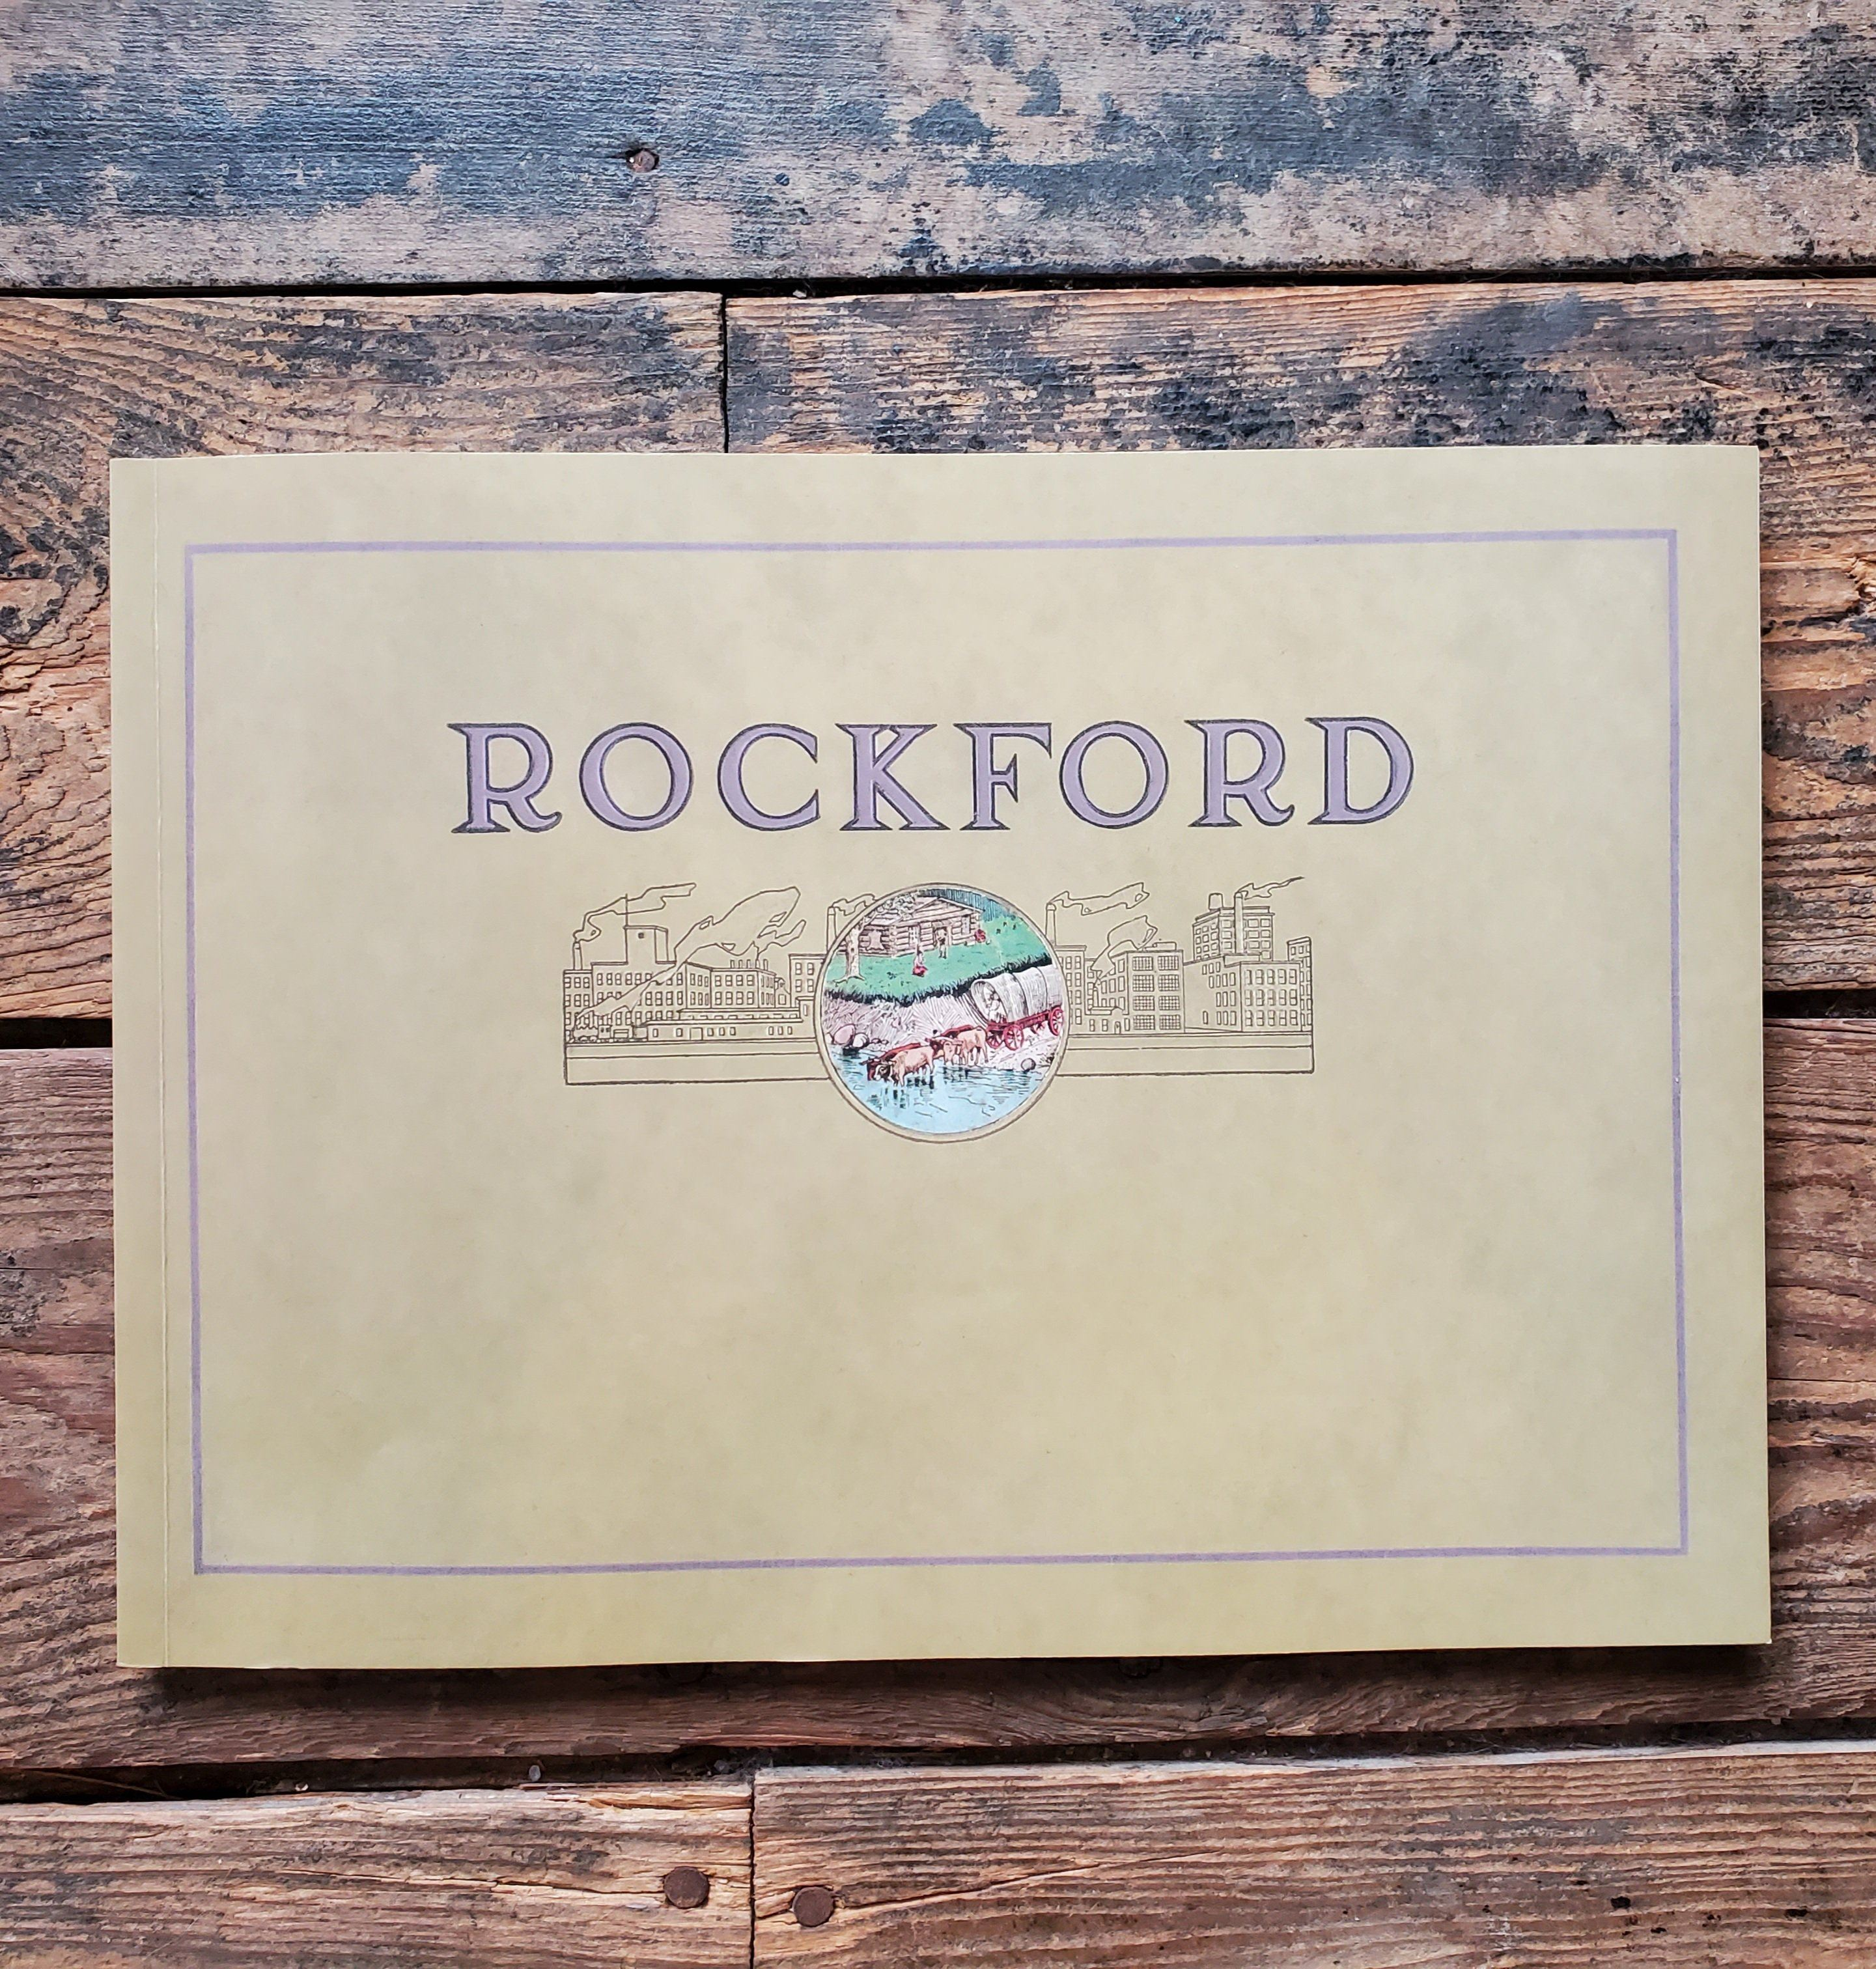 Rockford Book accessory Toad Hall